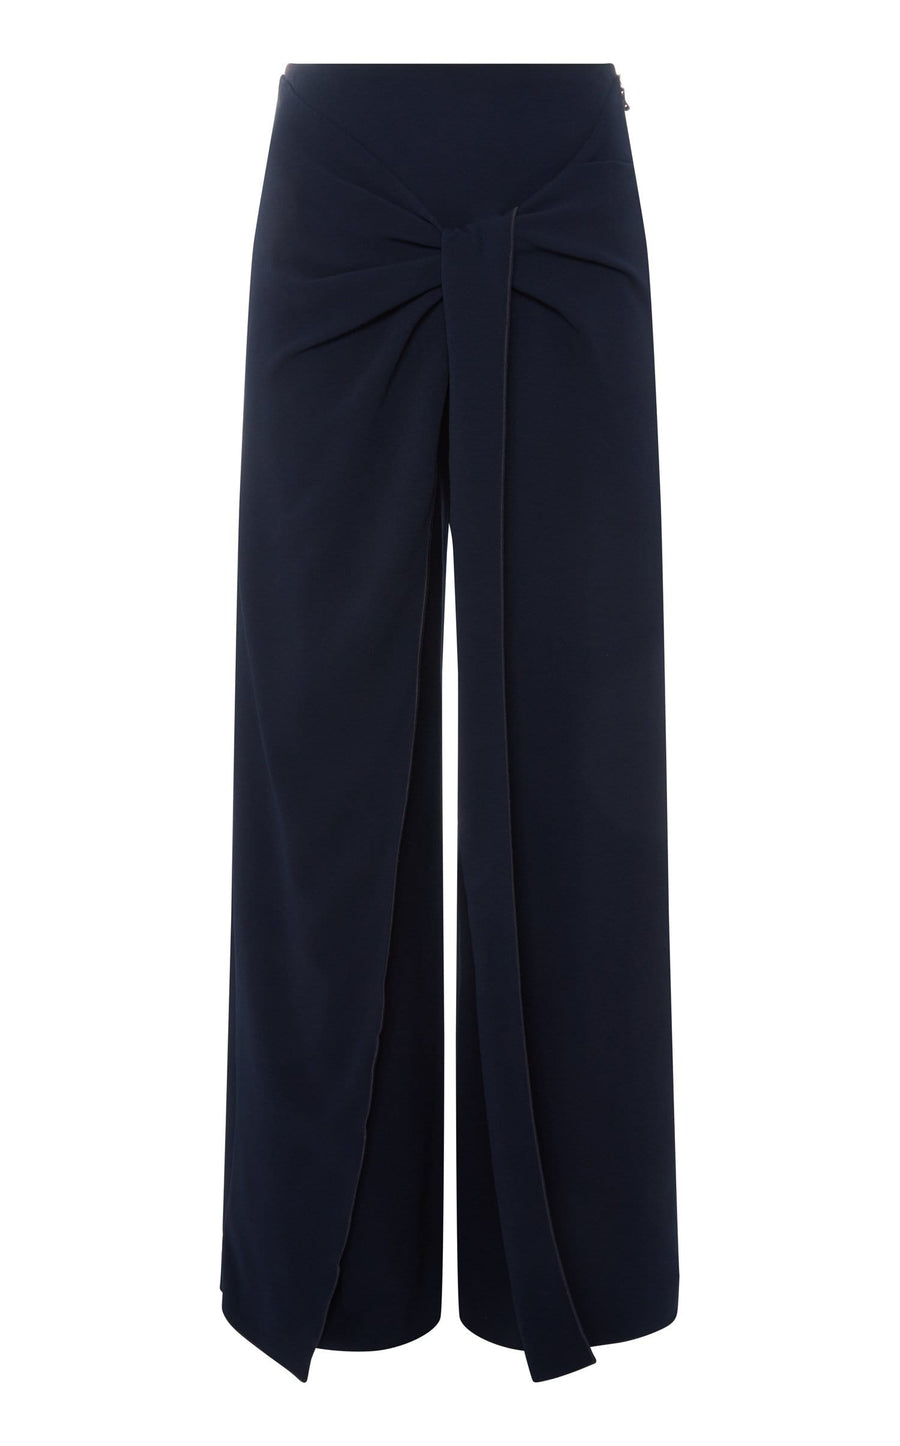 Fenwick Trouser In Navy from Roland Mouret